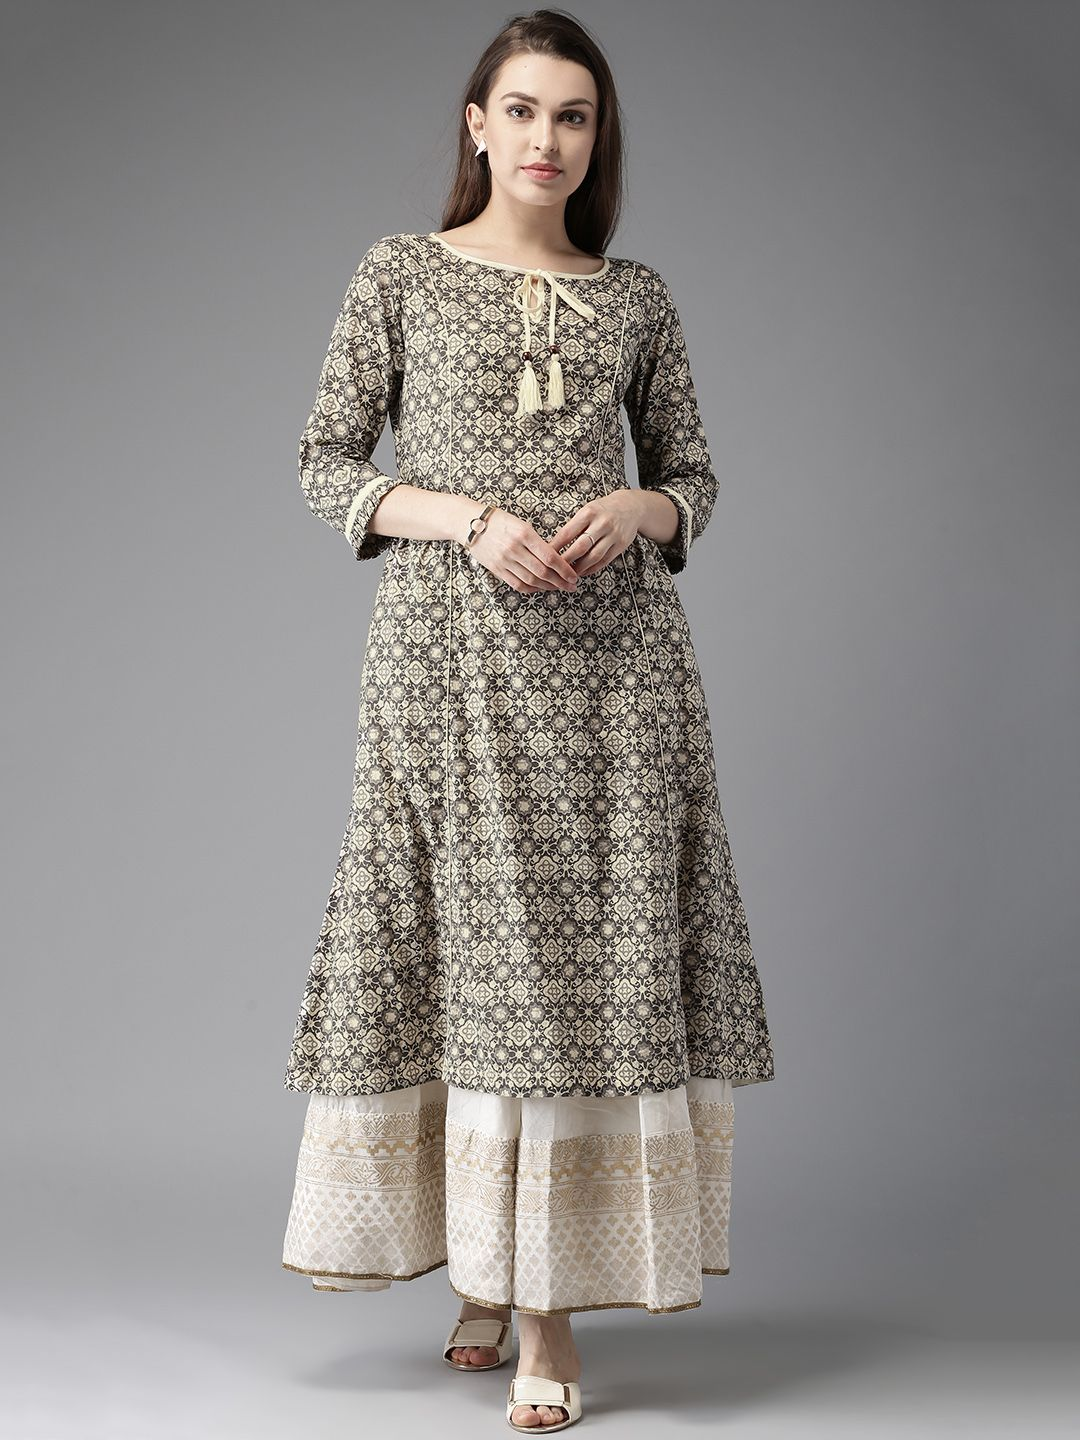 989a90c111 Buy Moda Rapido Grey & Cream-Coloured Printed A-Line Kurta online in India  at best price.Grey and cream -coloured printed A-line kurta , has a keyhole  neck, ...